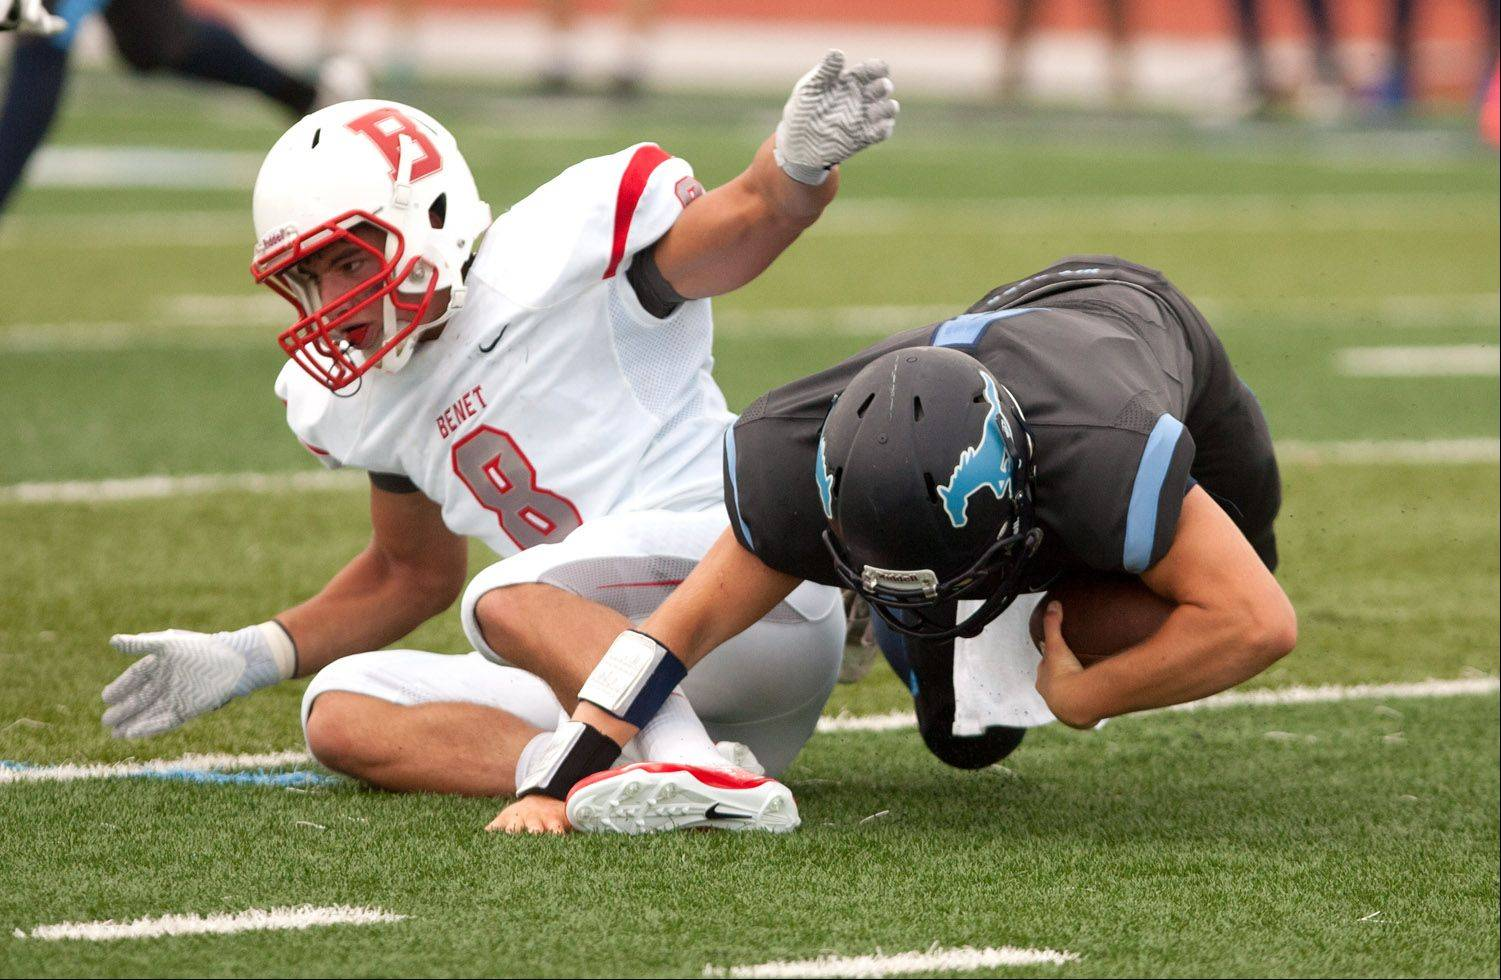 Benet Academy's Nick Surges, left, sacks Downers Grove South quarterback Jordan Skach during Saturday's season opener.